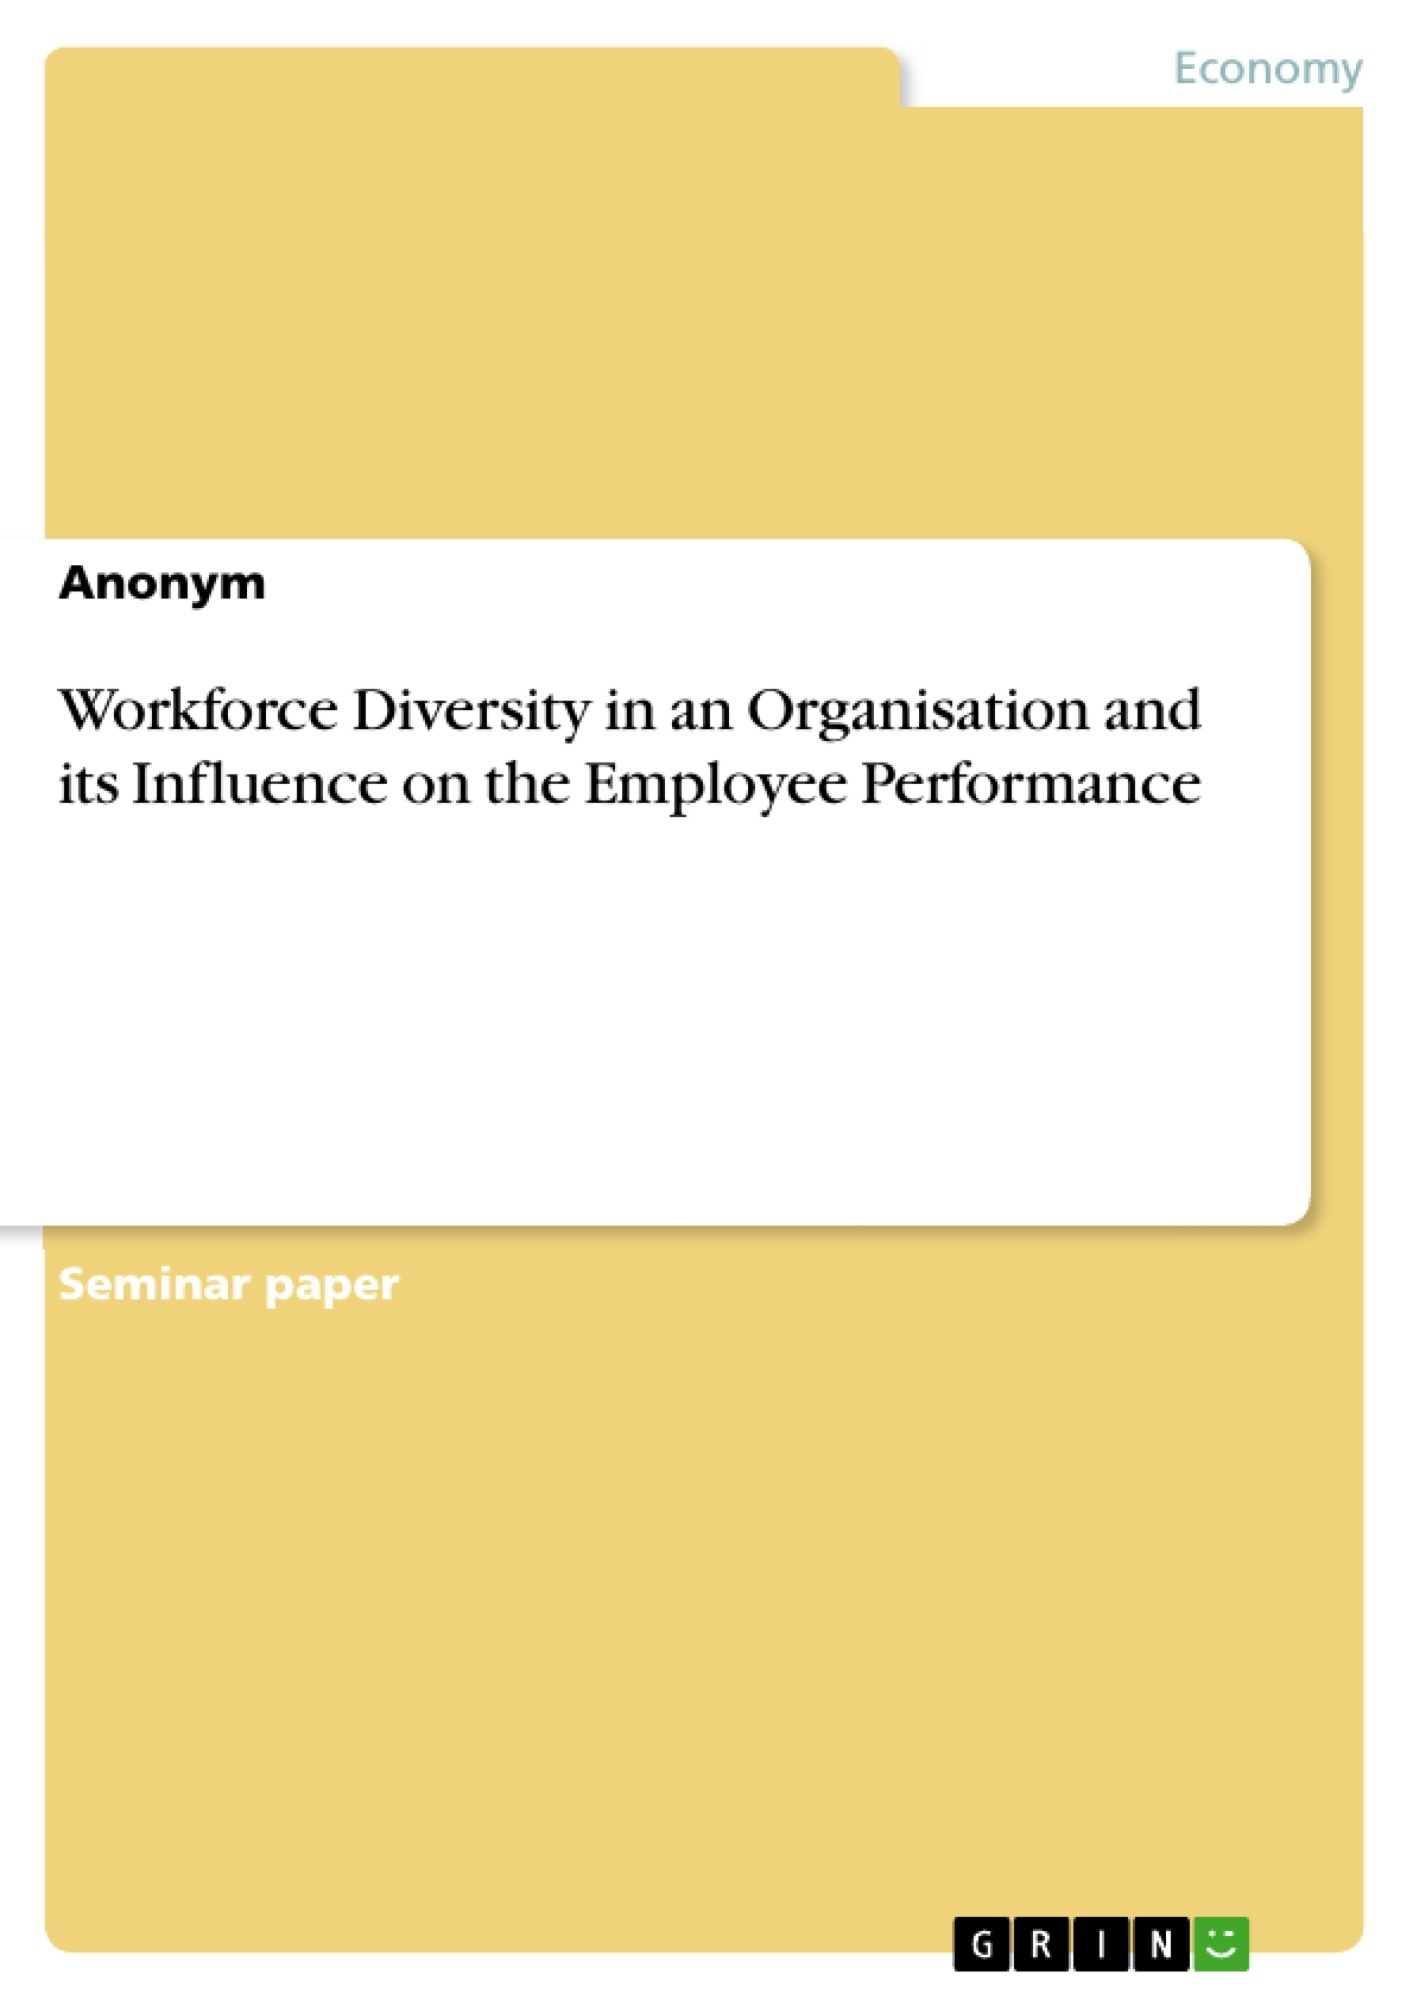 Title: Workforce Diversity in an Organisation and its Influence on the Employee Performance